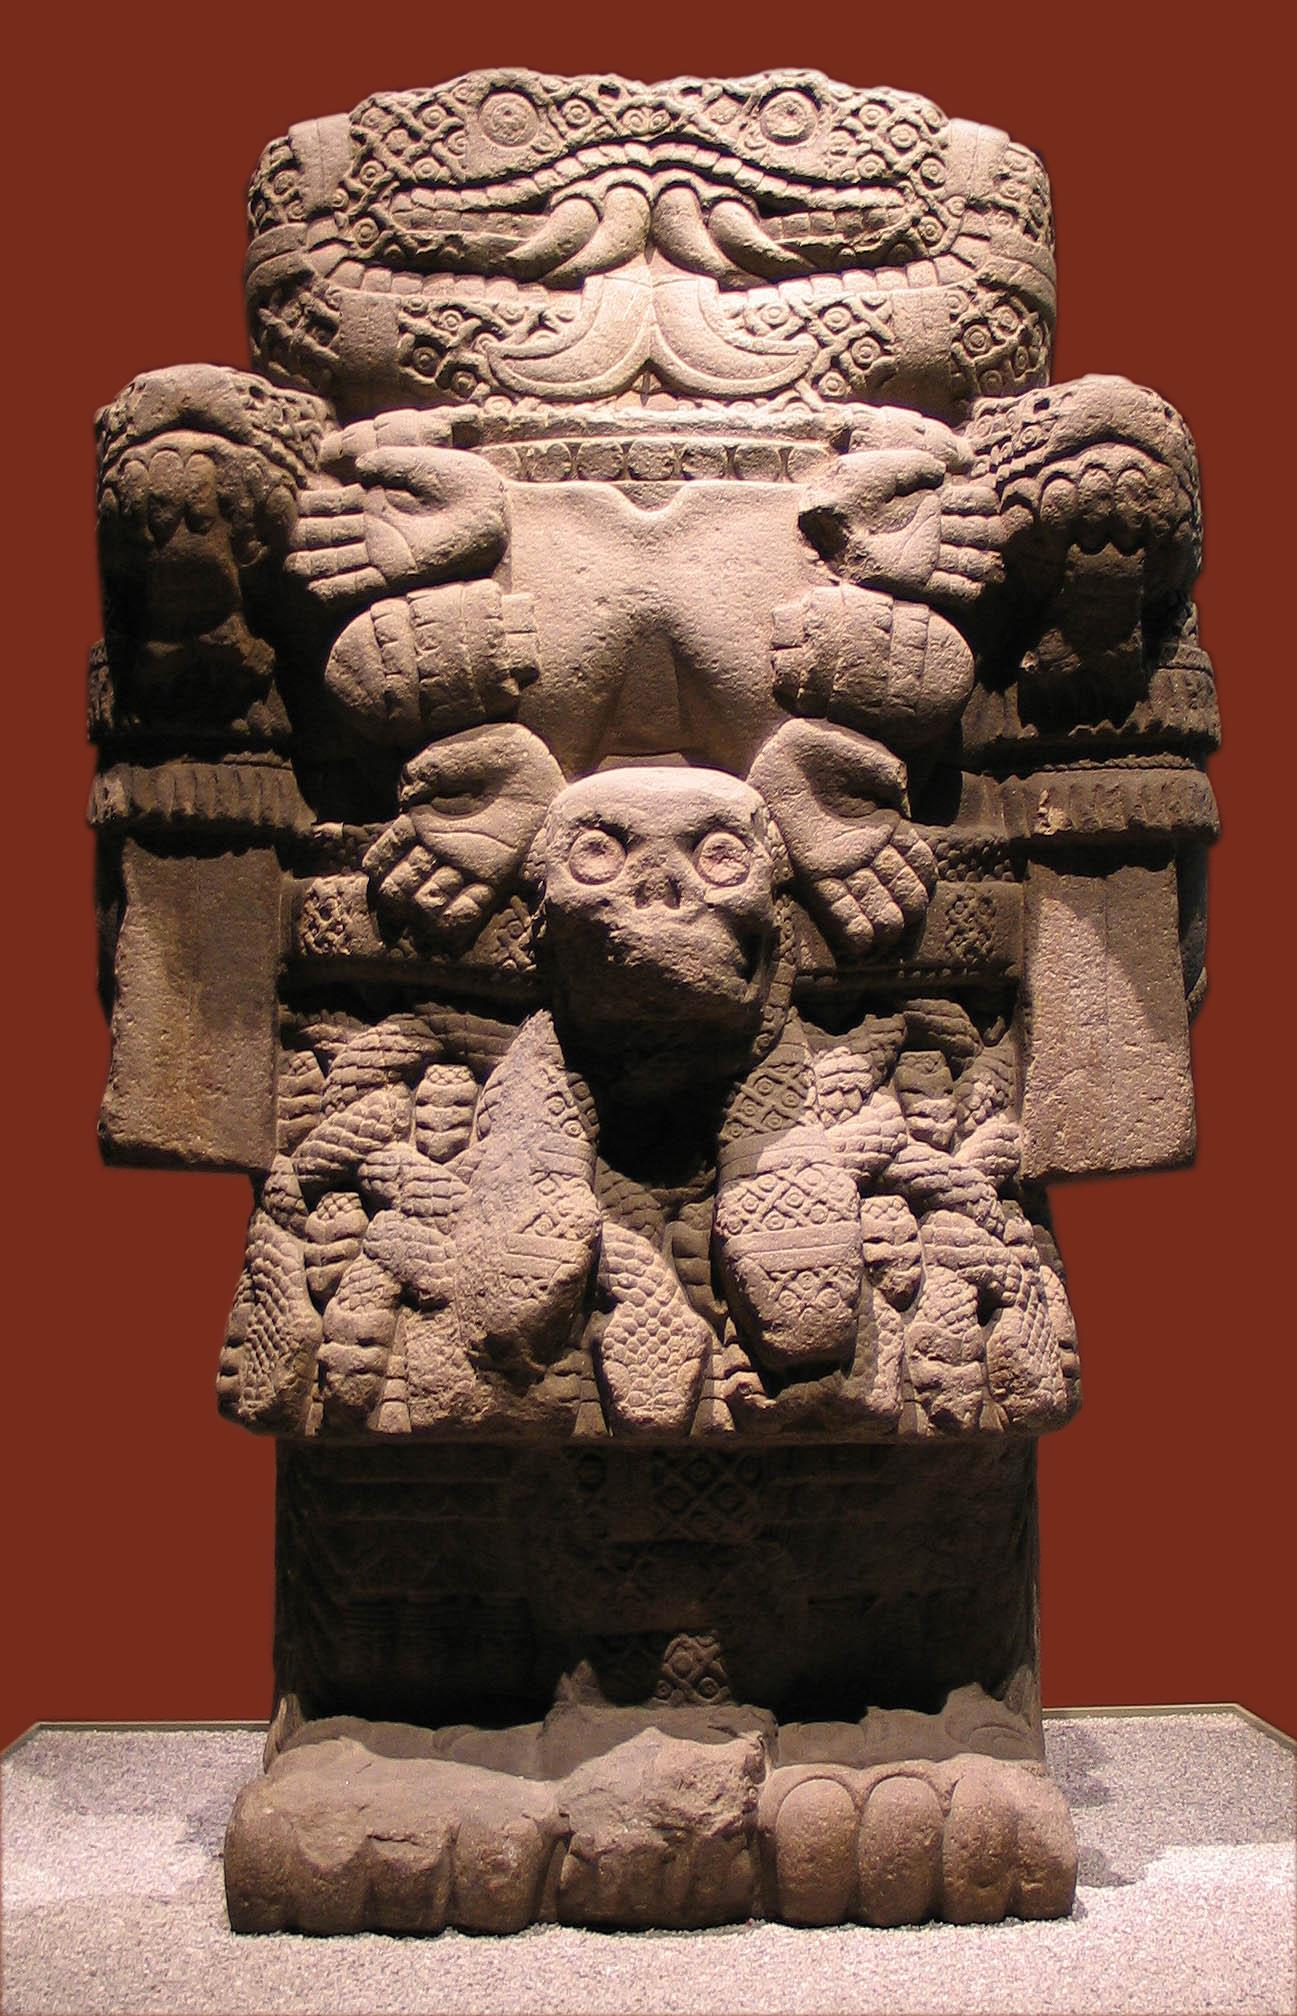 National Museum of Anthropology, Mexico City, Statue exhibit